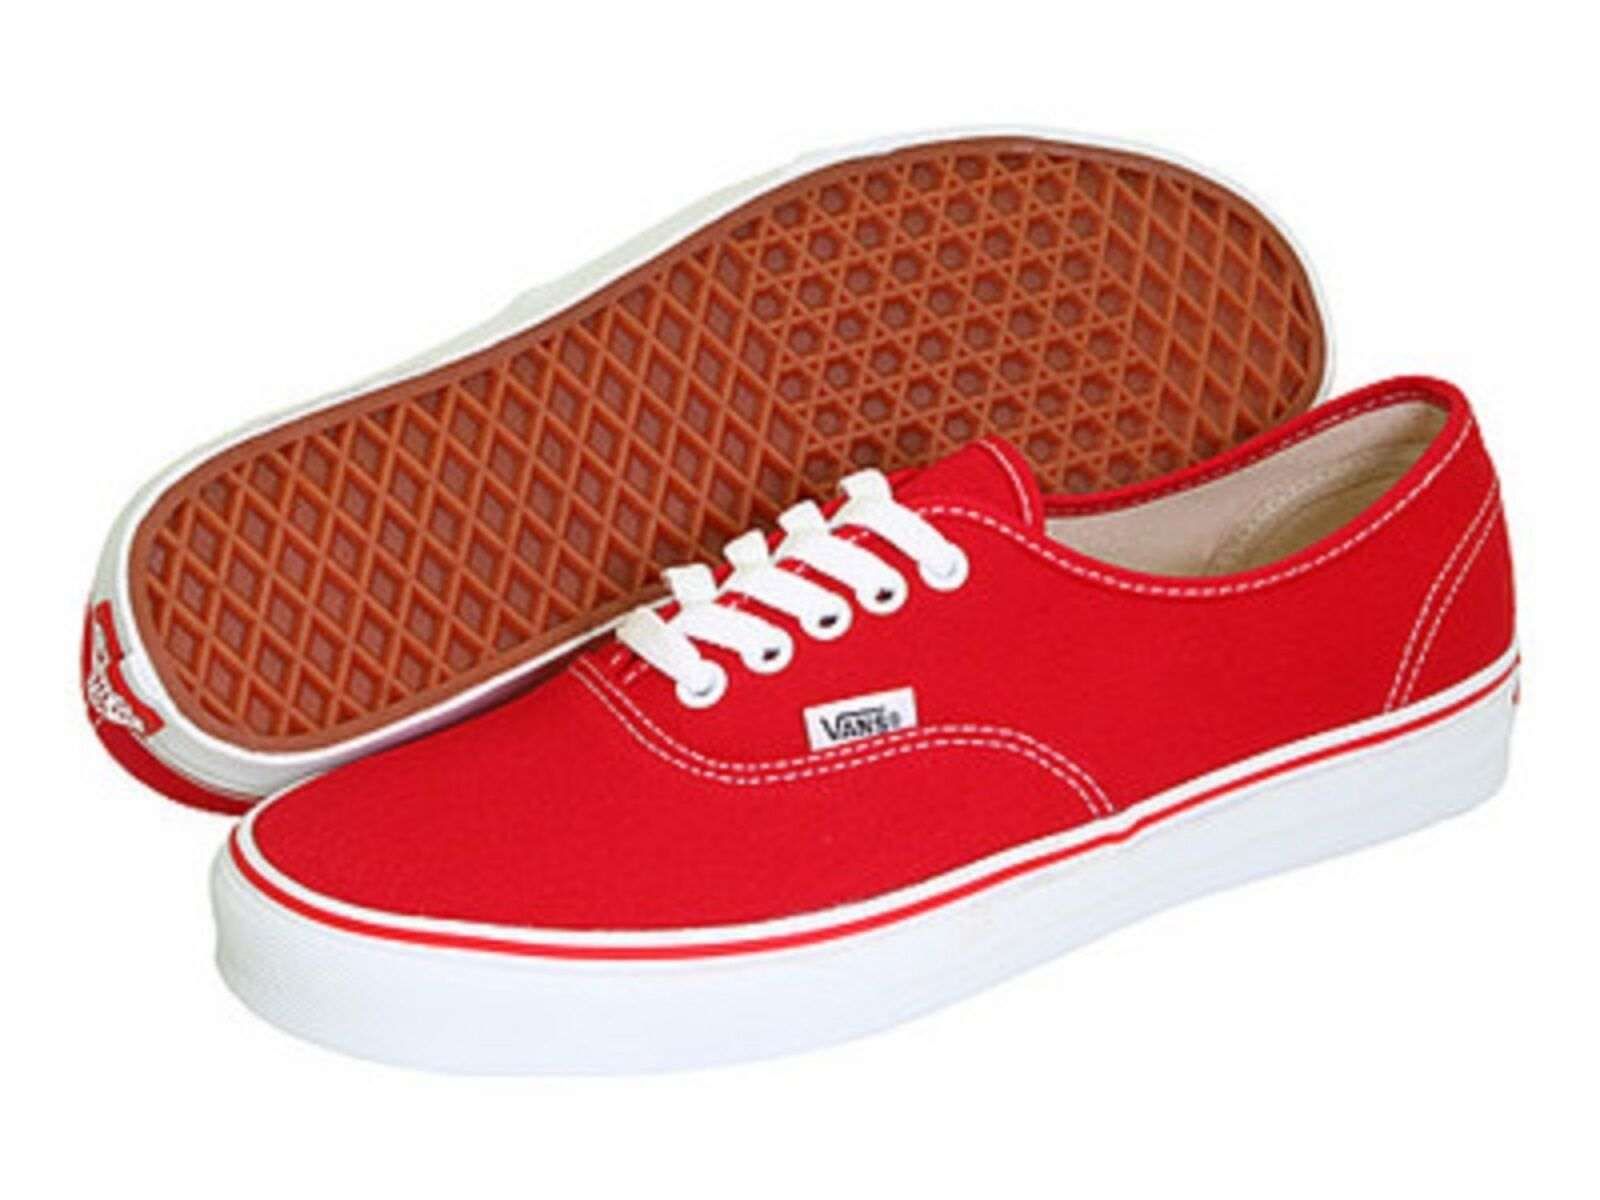 VANS CLASSIC AUTHENTIC rot herren ATHLETIC schuhe NEW WITHOUT BOX